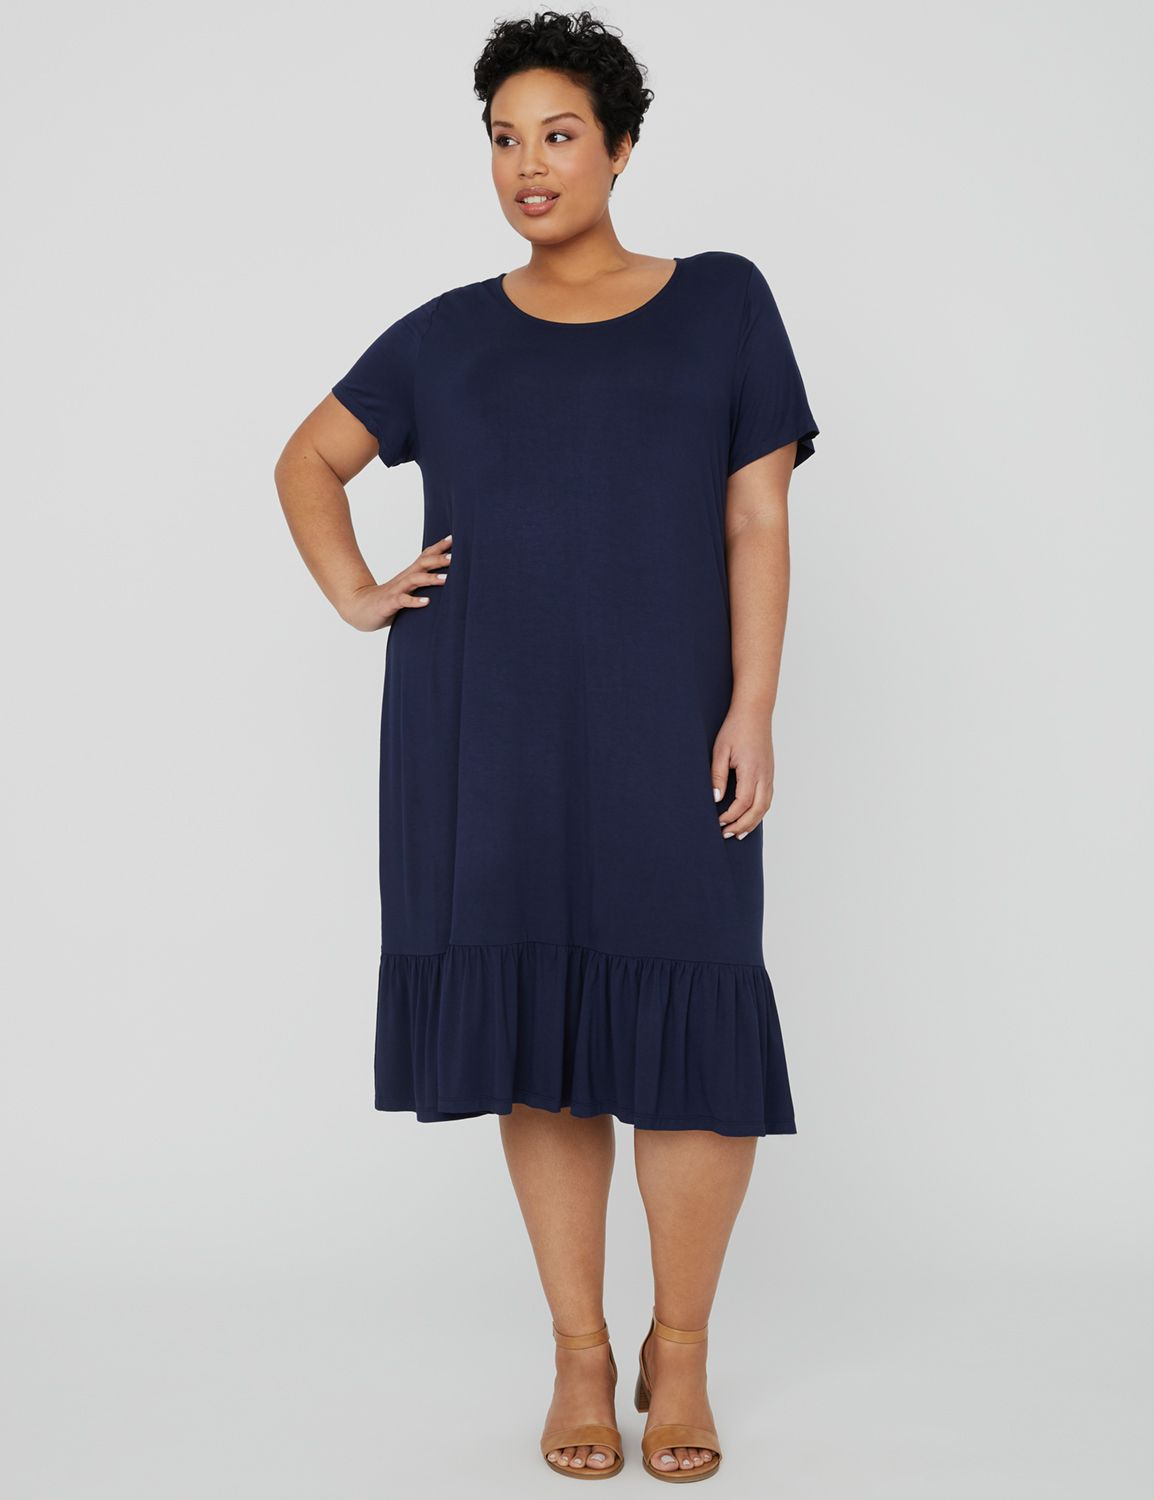 Exhale T-Shirt A-Line Dress 1090955 T-shirt Dress with Flounce MP-300102402